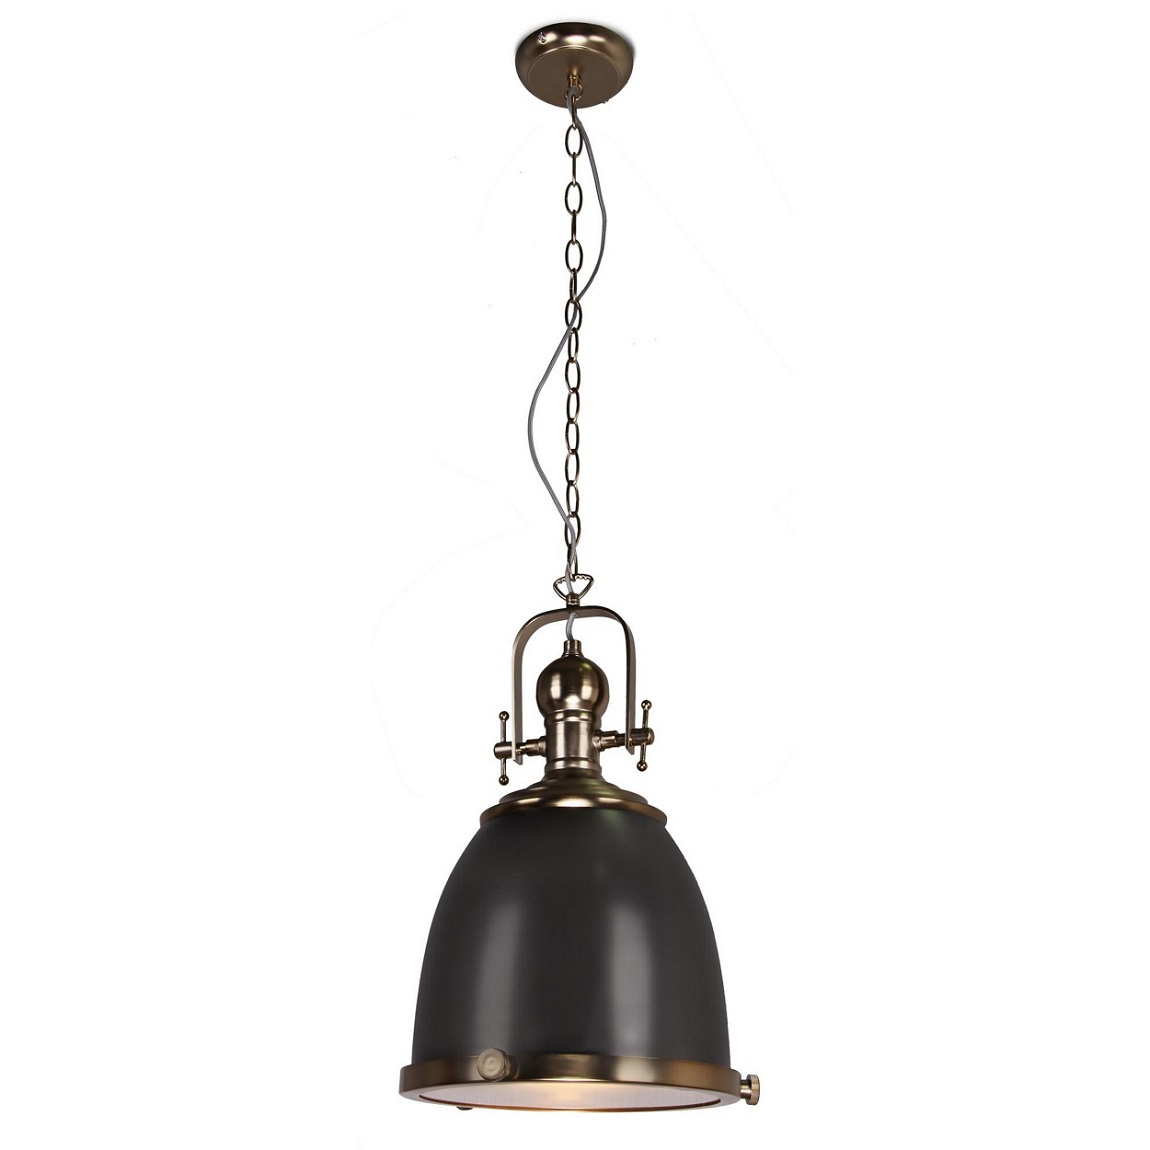 Debenhams Home Collection 'Autumn' Pendant Ceiling Light